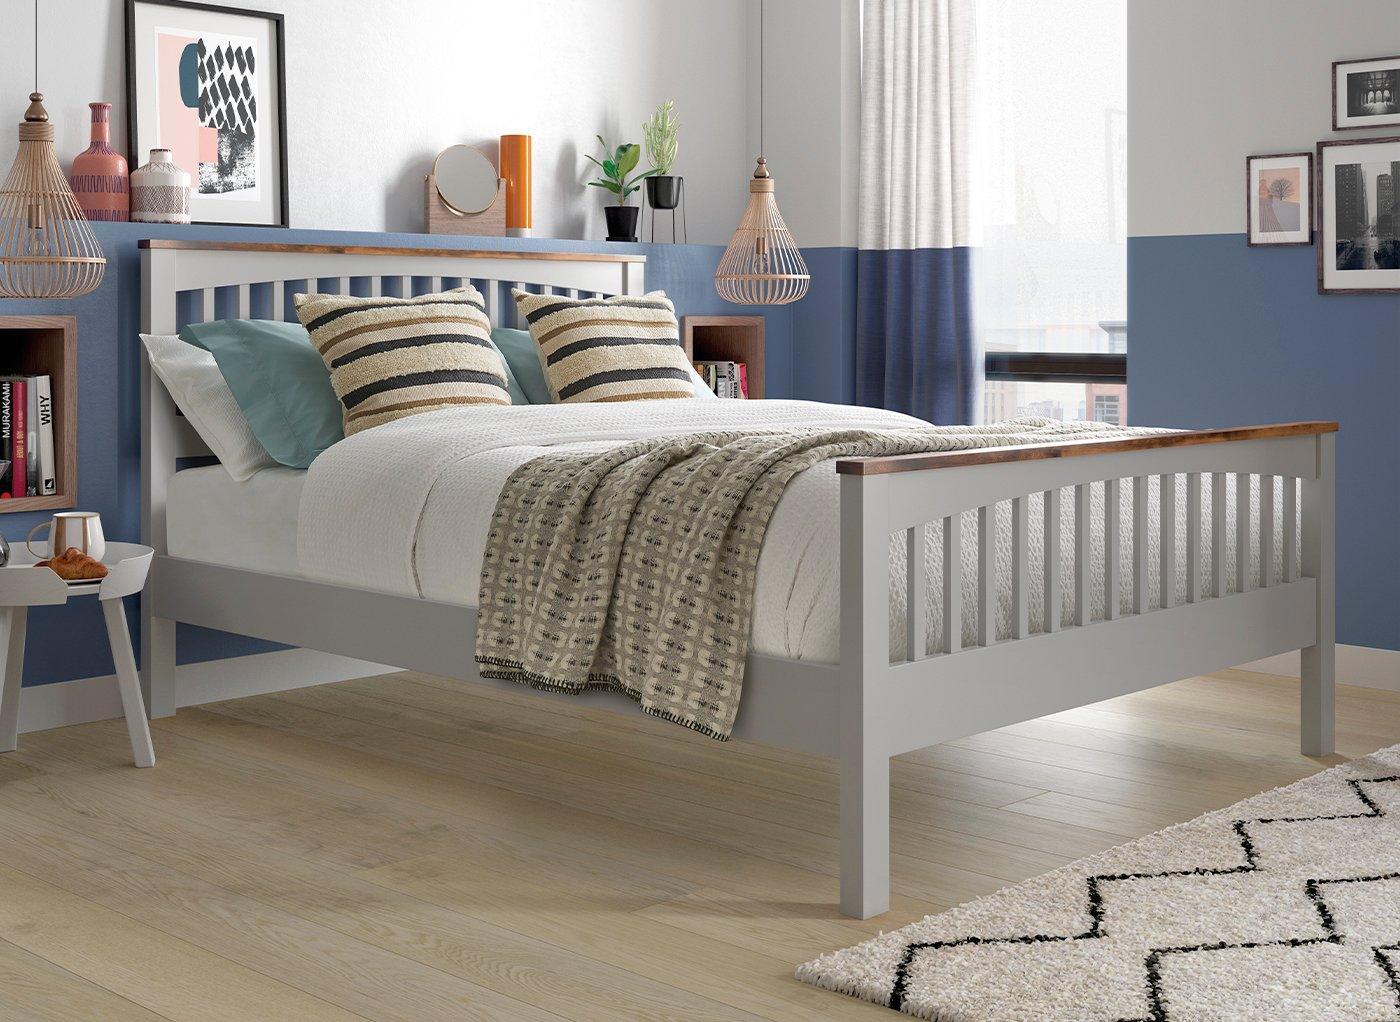 Fleetwood Wooden Bed Frame 5'0 King GREY